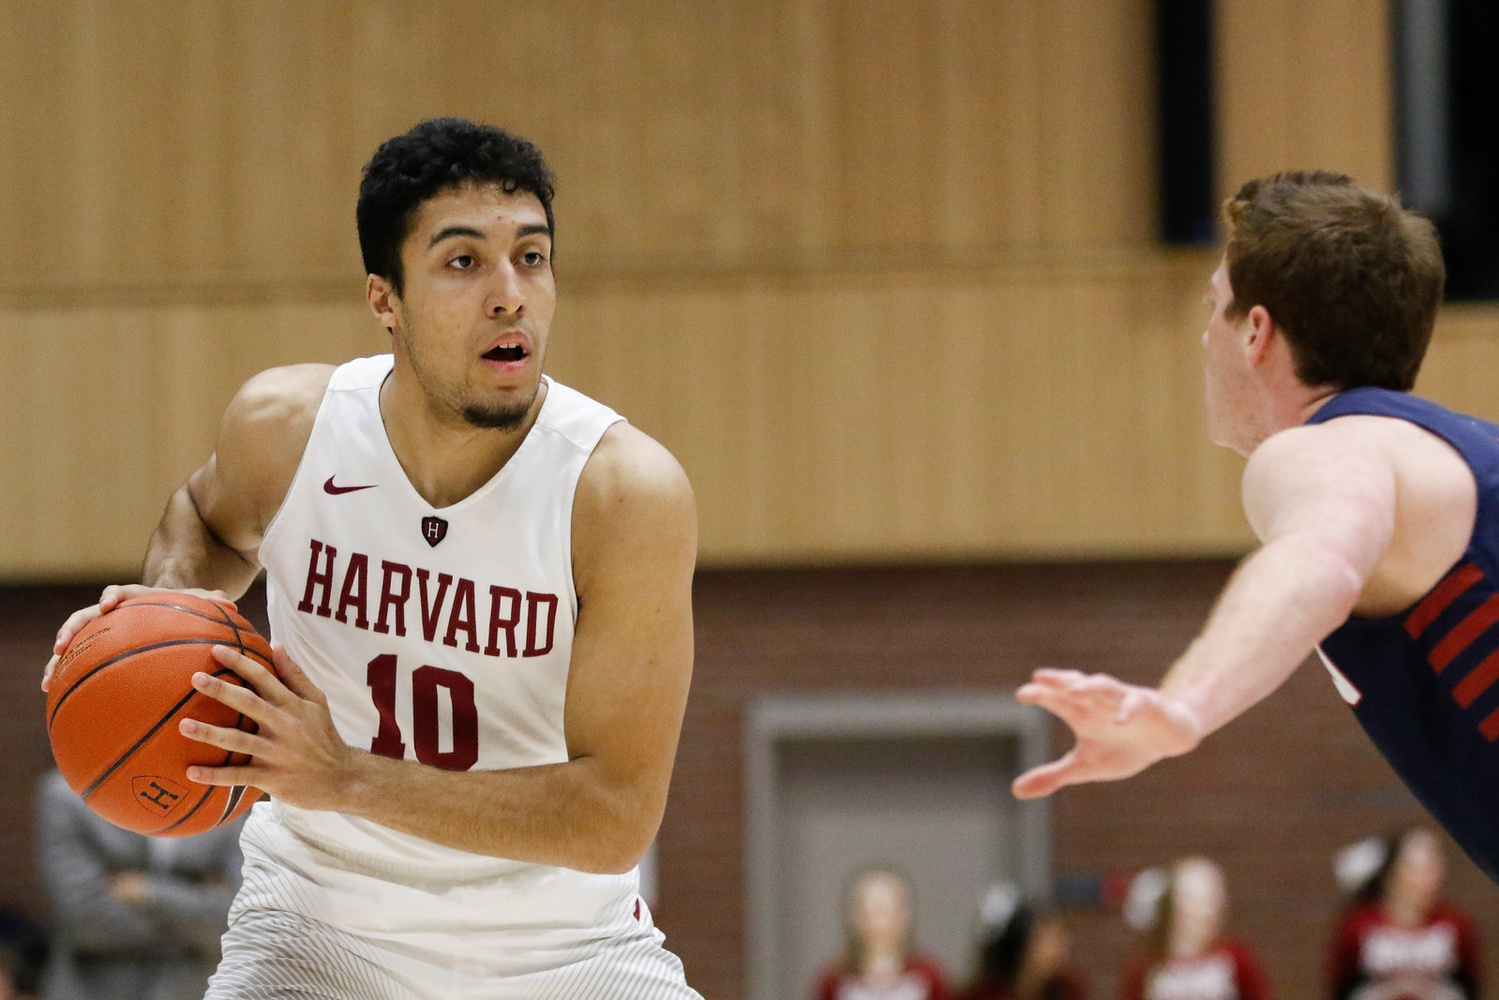 The hard-working, All-Ivy League forward is eager to return to the hardwood as one of the Crimson's veteran leaders.